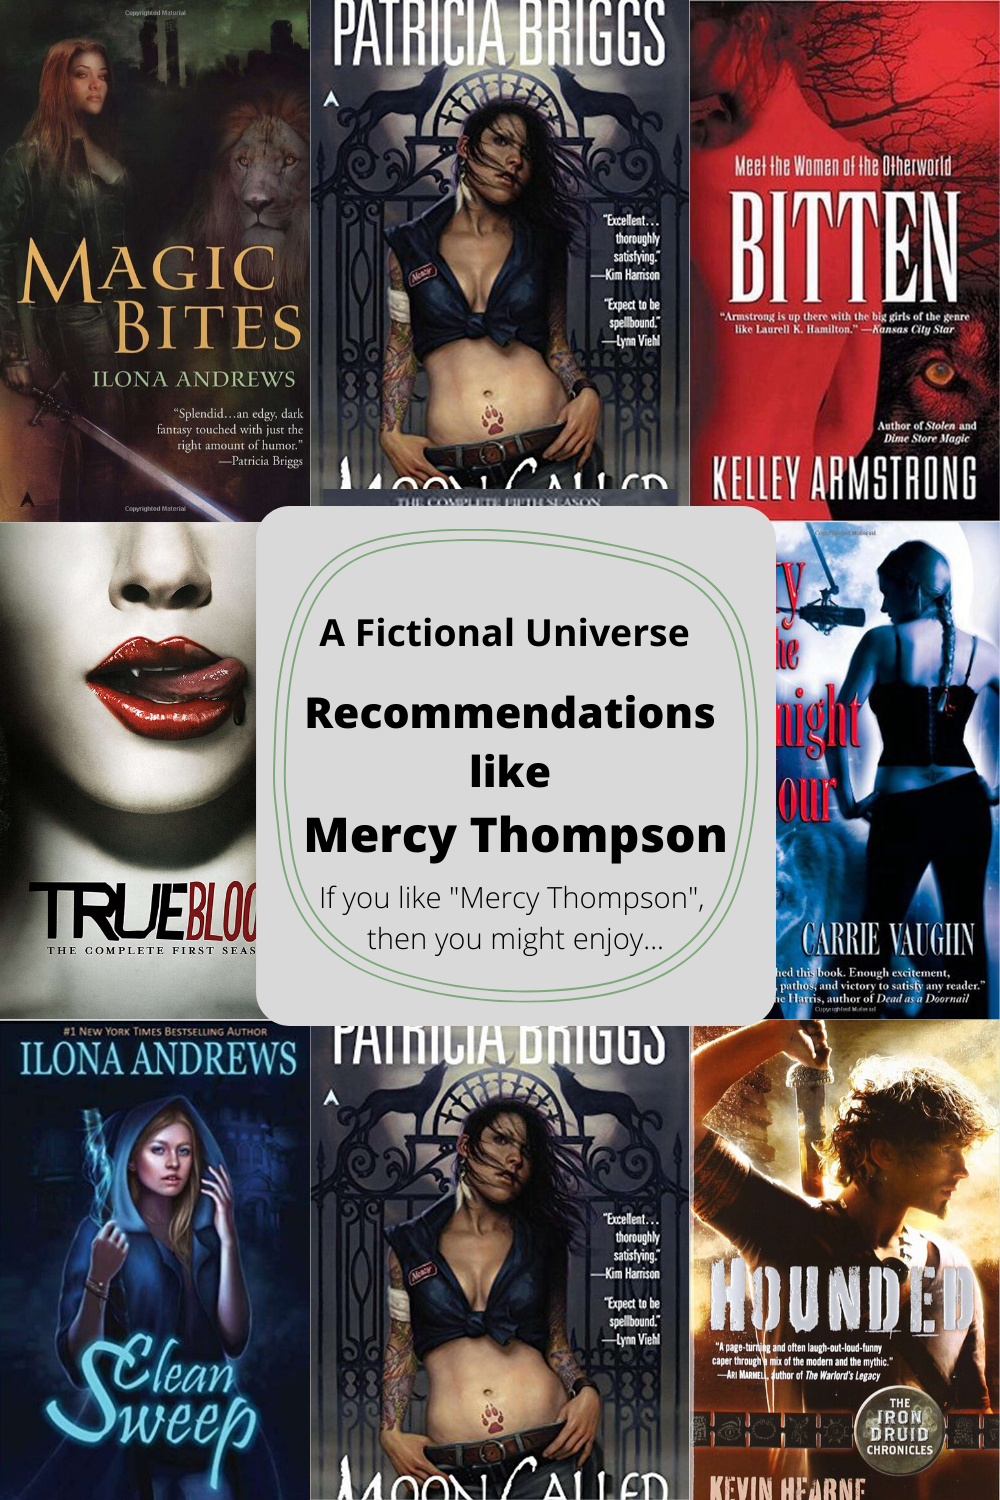 Mercy Thompson Similar Recommendation Article Image